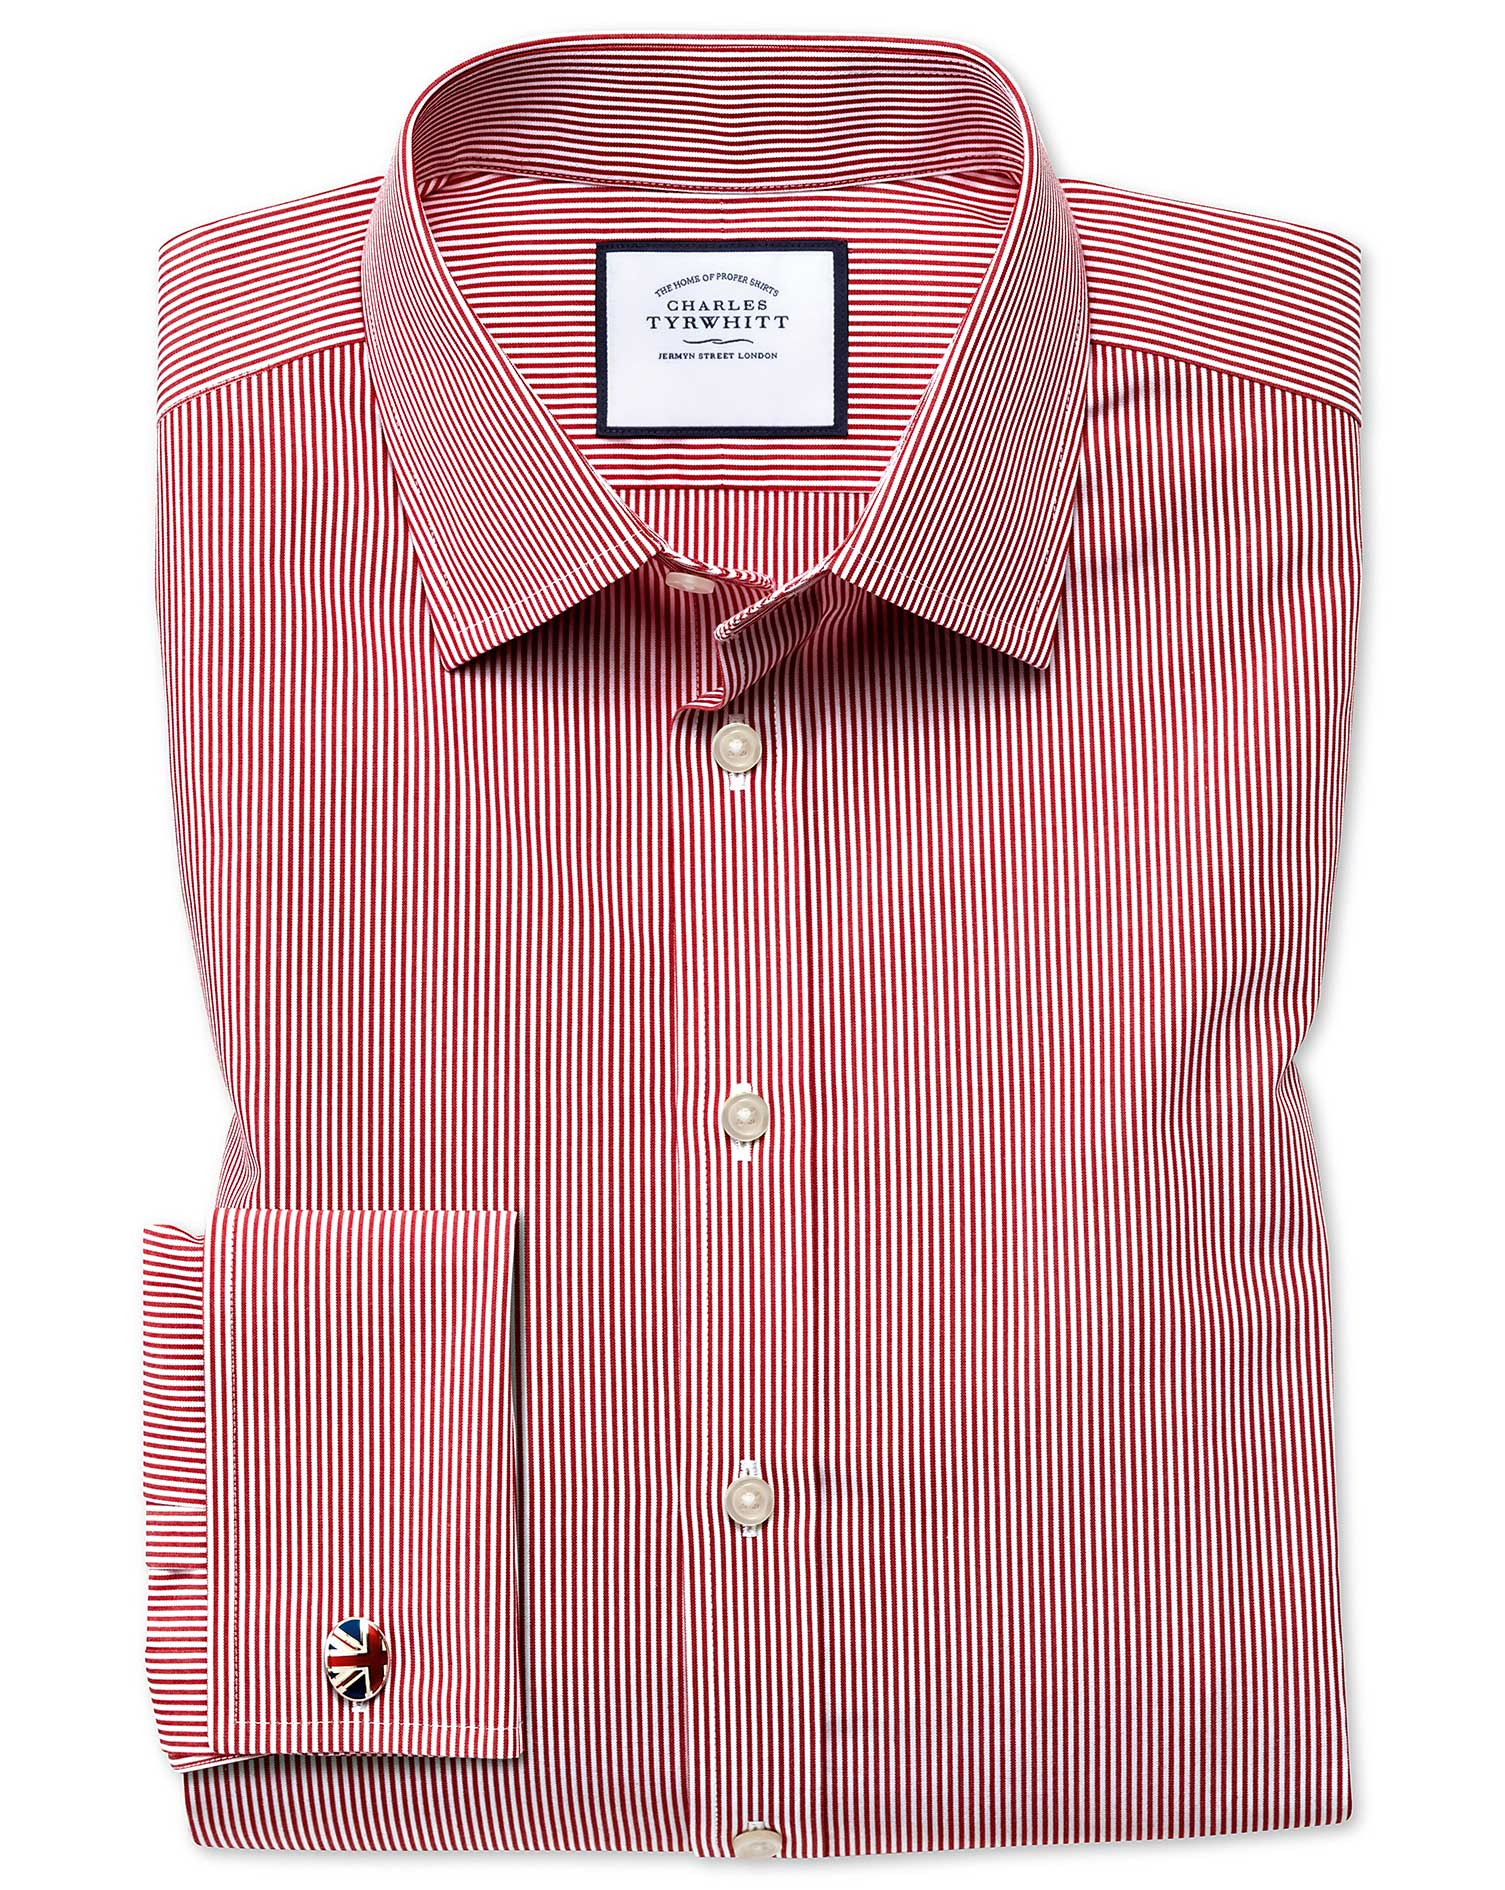 Slim Fit Non-Iron Bengal Stripe Red Cotton Formal Shirt Double Cuff Size 16/33 by Charles Tyrwhitt